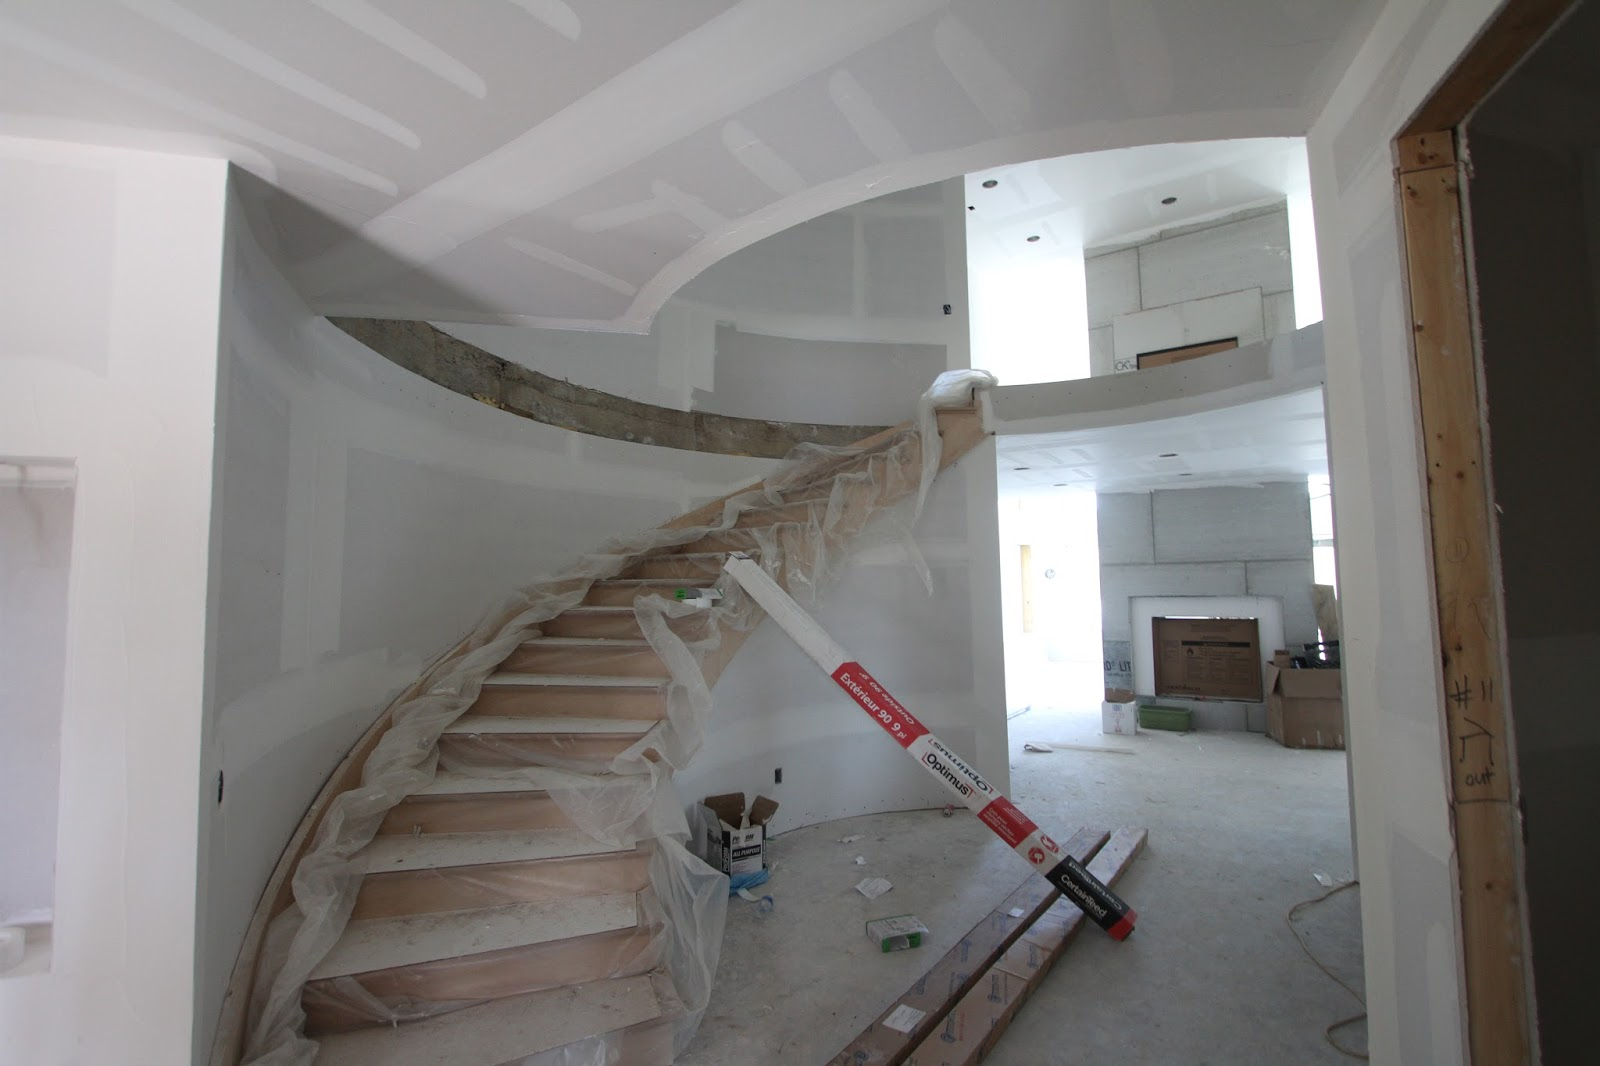 The Stairs Are Still Well Protected From Damage And As Soon As The Drywall  Is Completed, The Woodworking Can Begin.